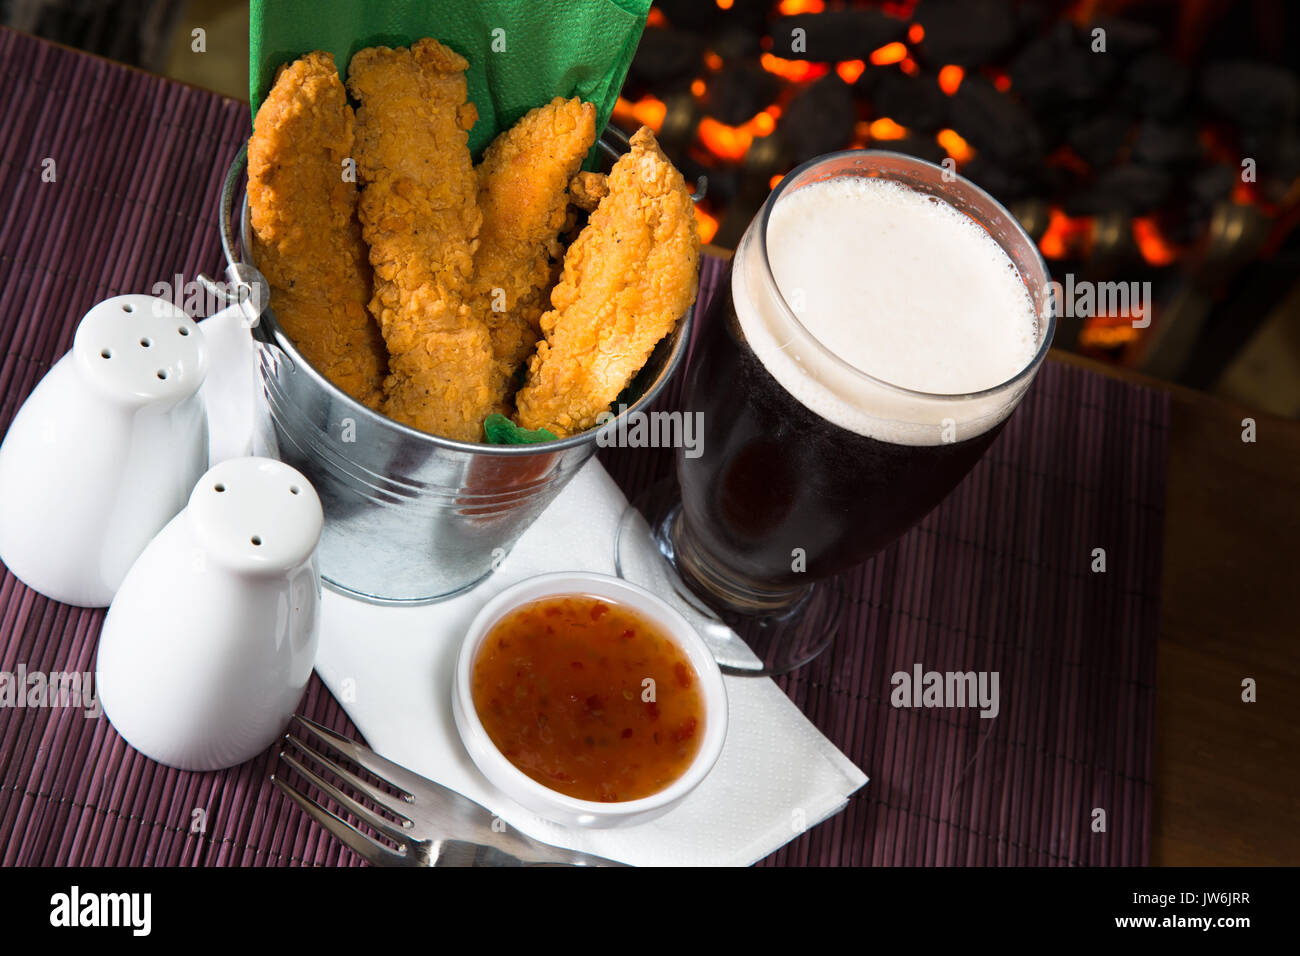 A pub/restaurant lunch/ snack of Hot and Spicy breaded Chicken fillets with a Sweet Chili dip and a glass of ale. - Stock Image